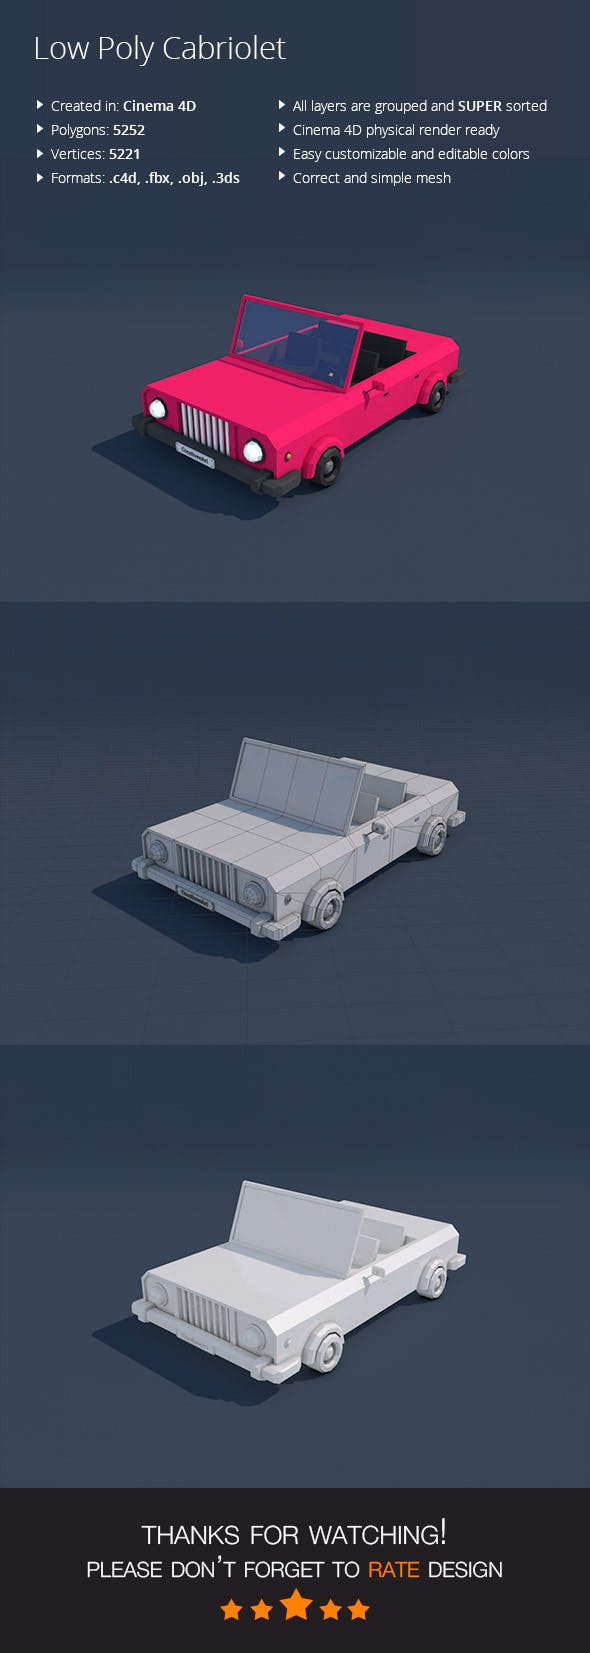 Low Poly Cabriolet Car - 3DOcean Item for Sale